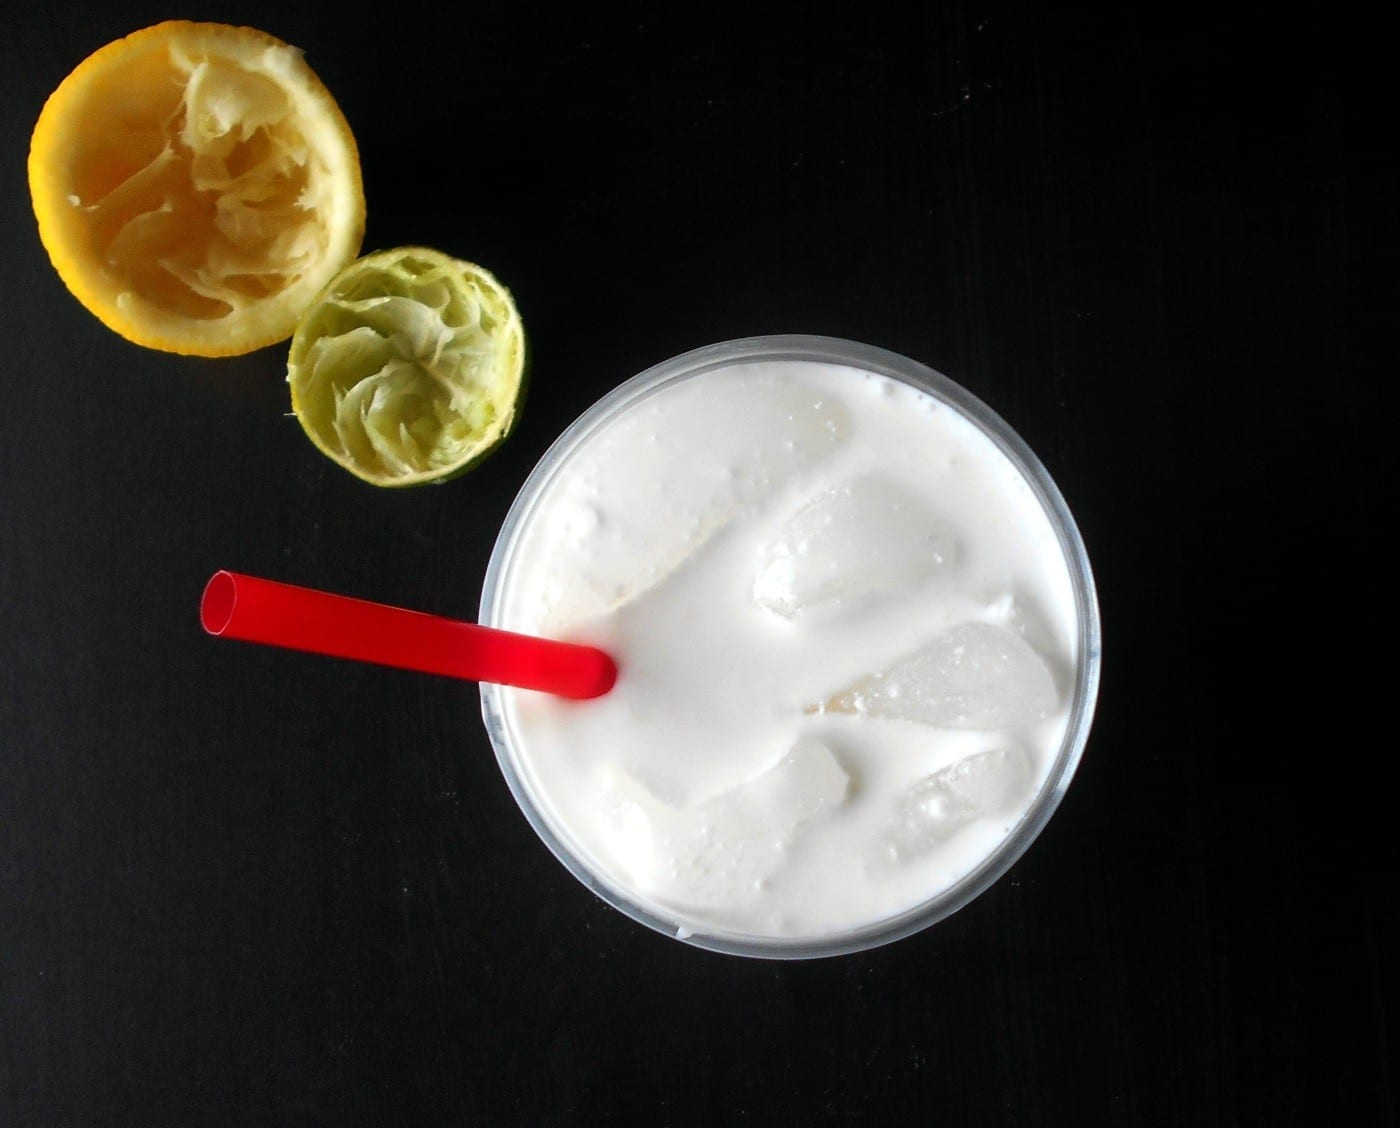 Overhead view of white lemonade with red straw and ice cubes. A side of squeezed lemons and lime on a black background